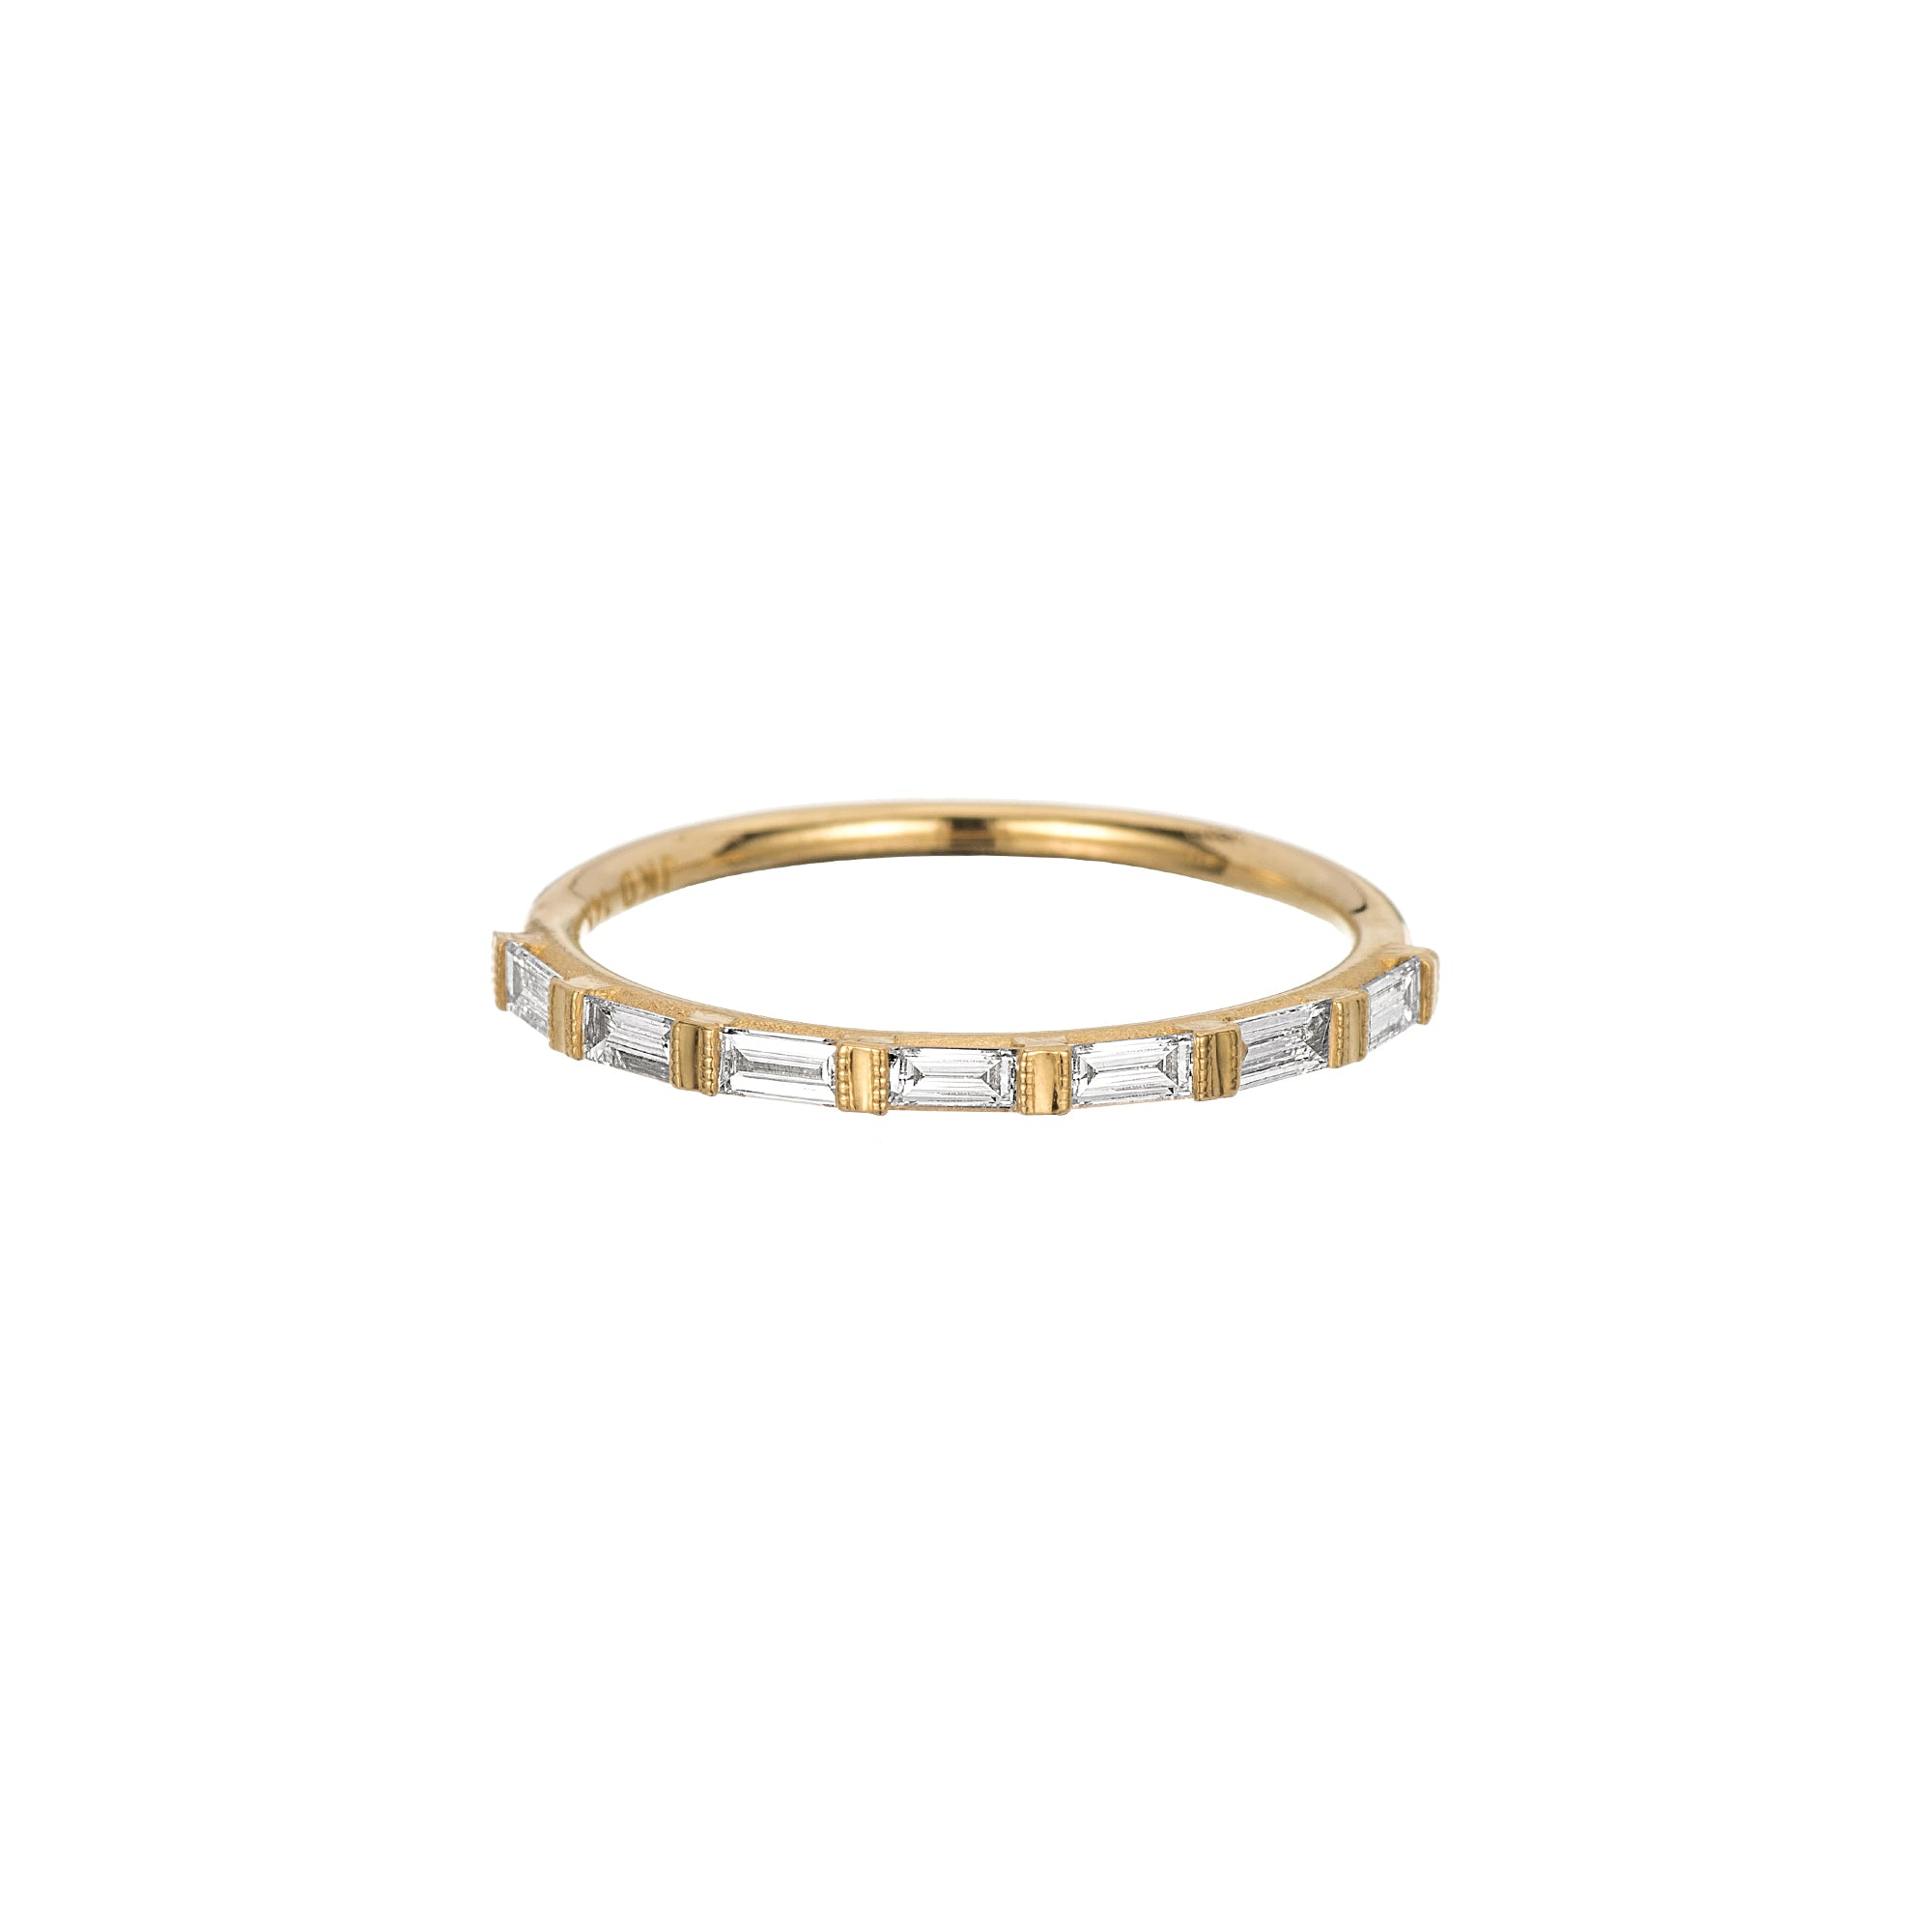 Gold & White Diamond Half Eternity Baguette Ring by Jennie Kwon for Broken English Jewelry